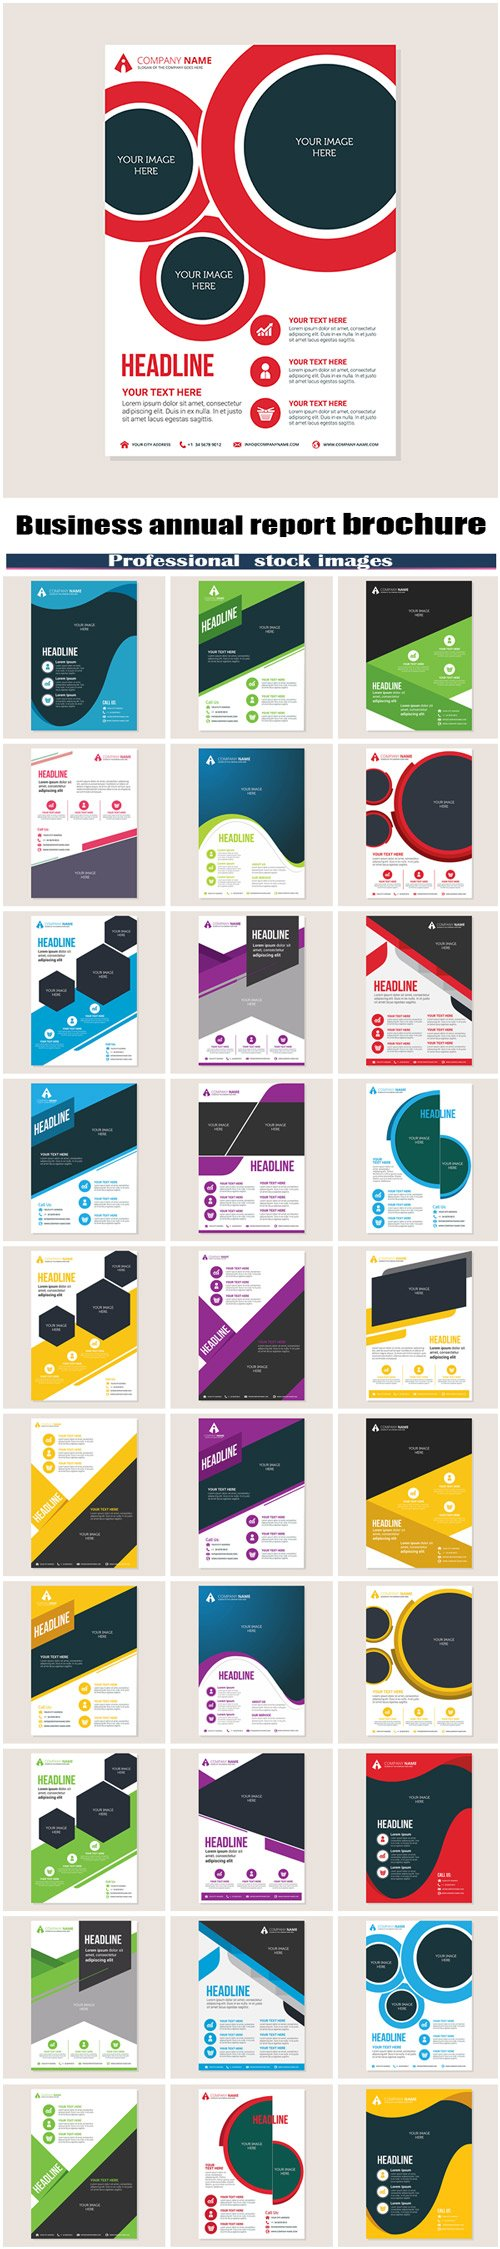 Corporate business annual report brochure